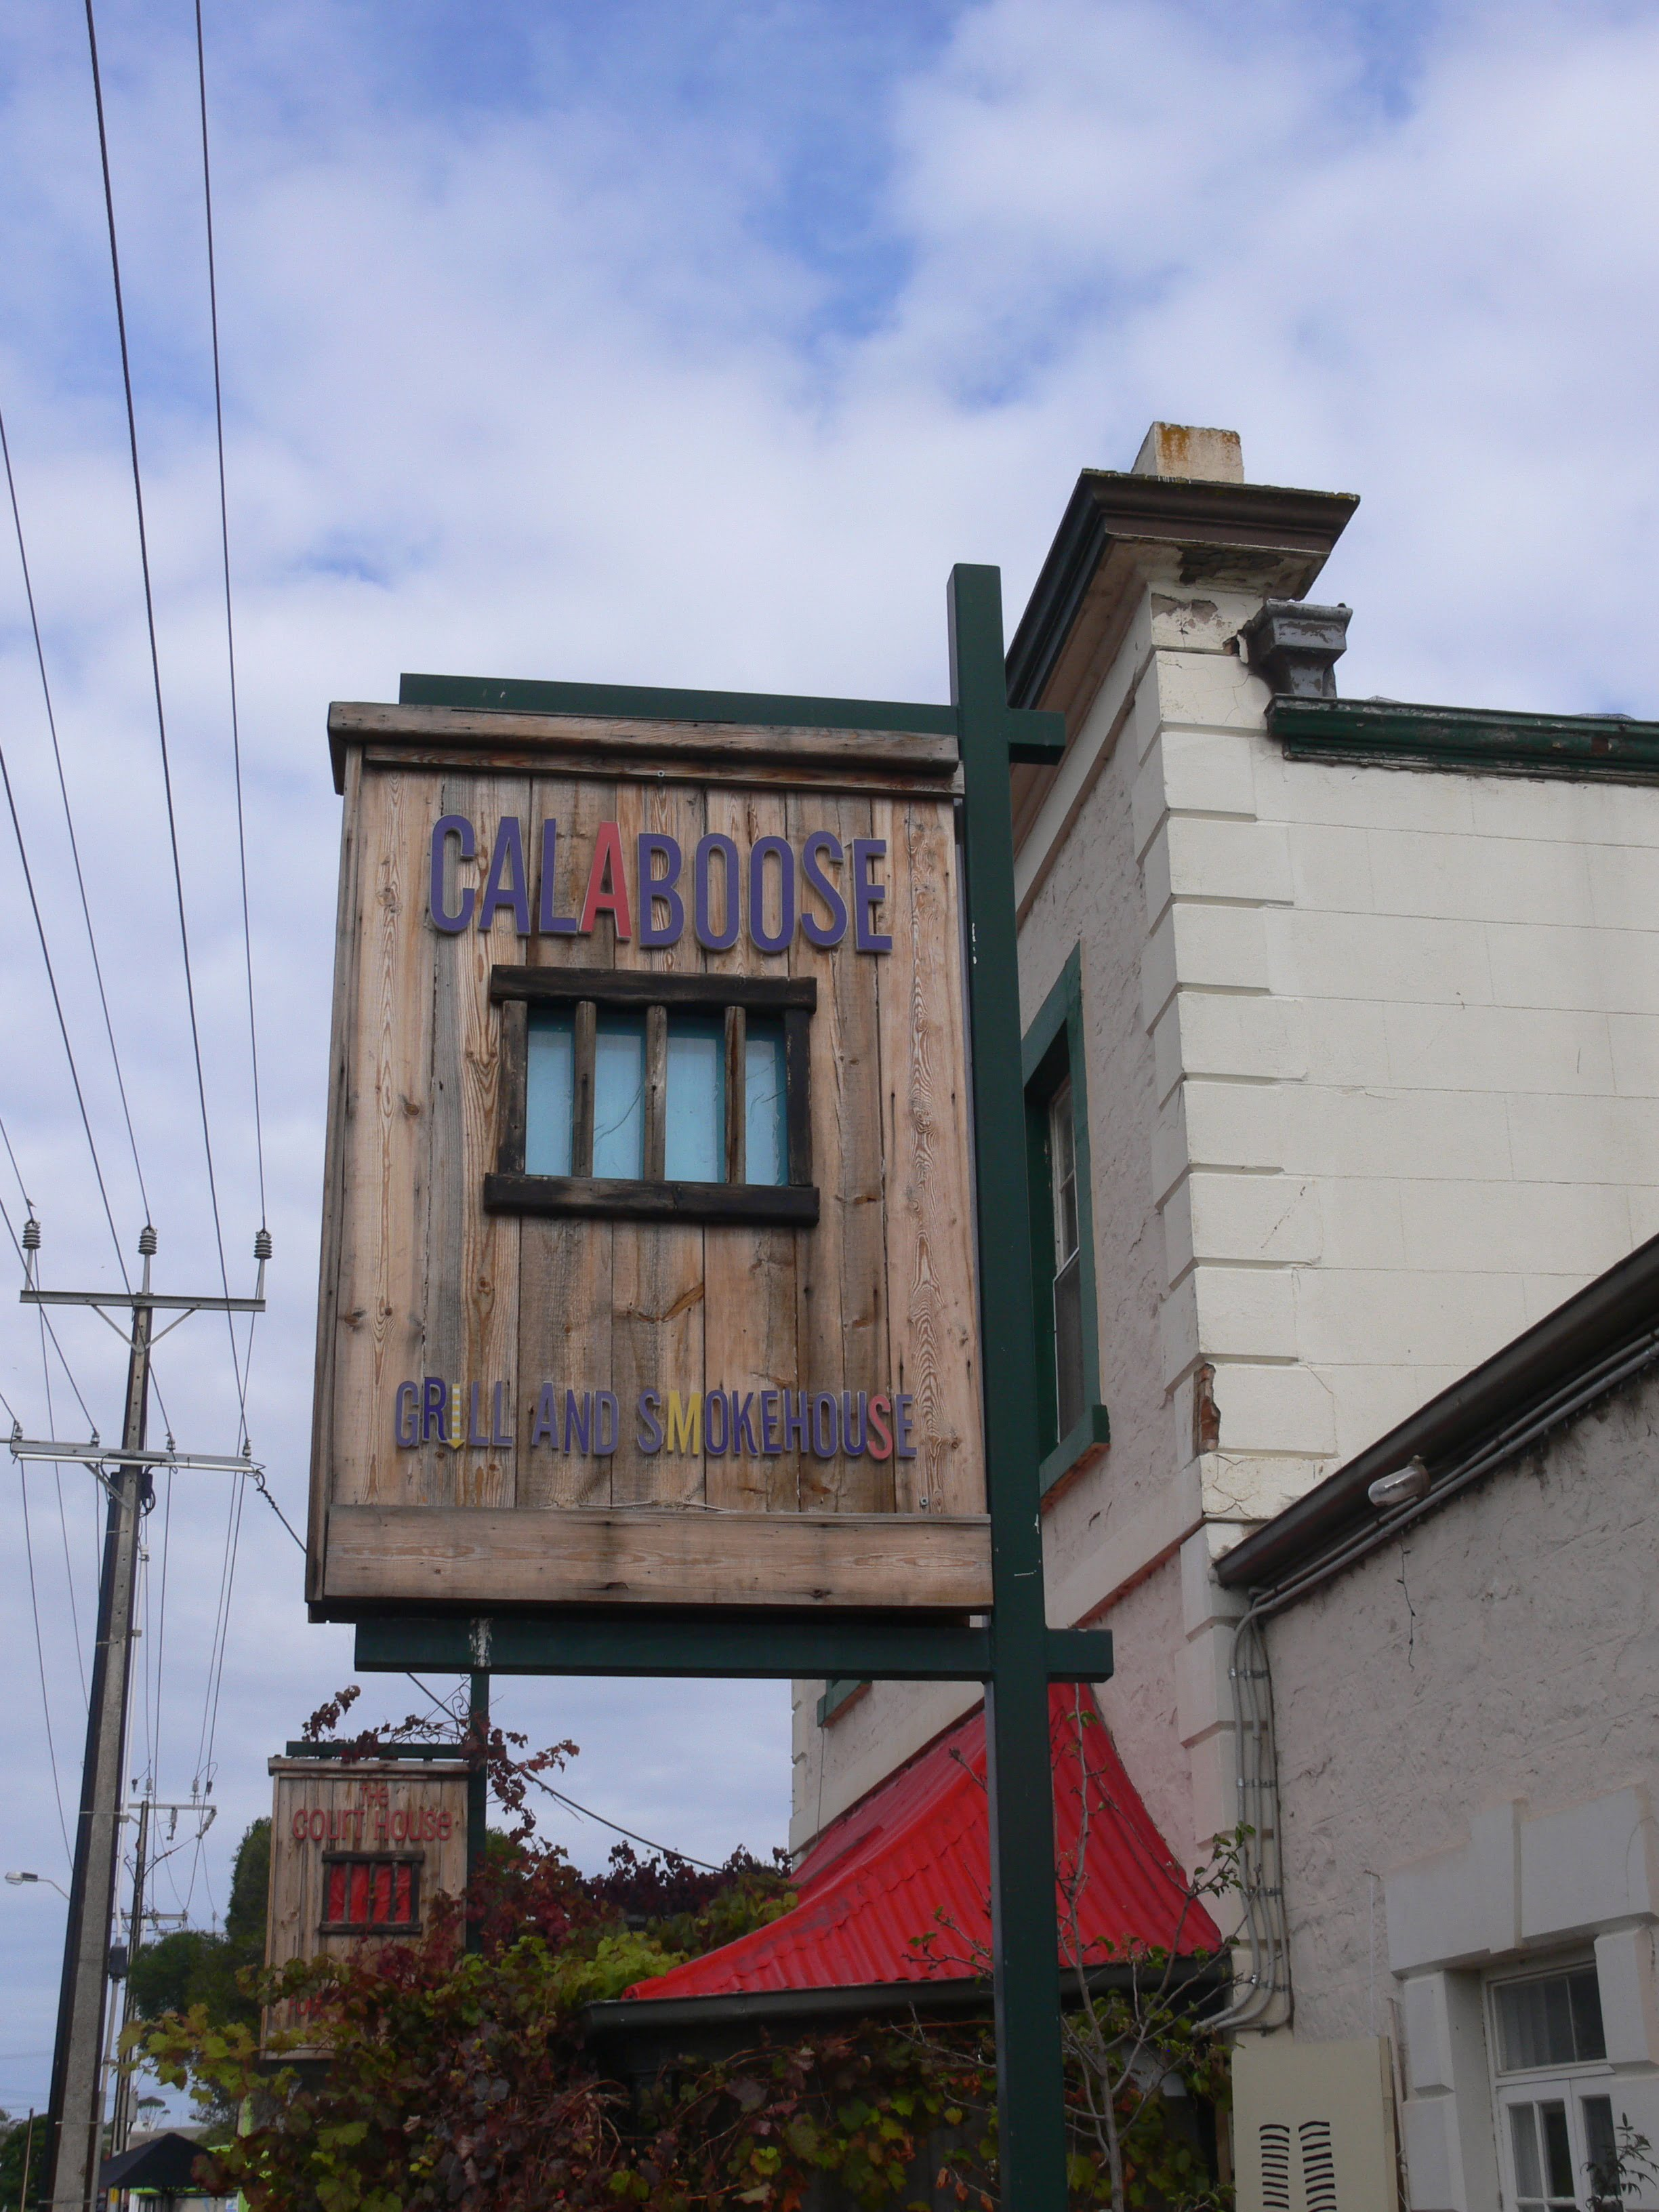 The Caboose Grill and Smokehaus in the Main St at Normanville, SA